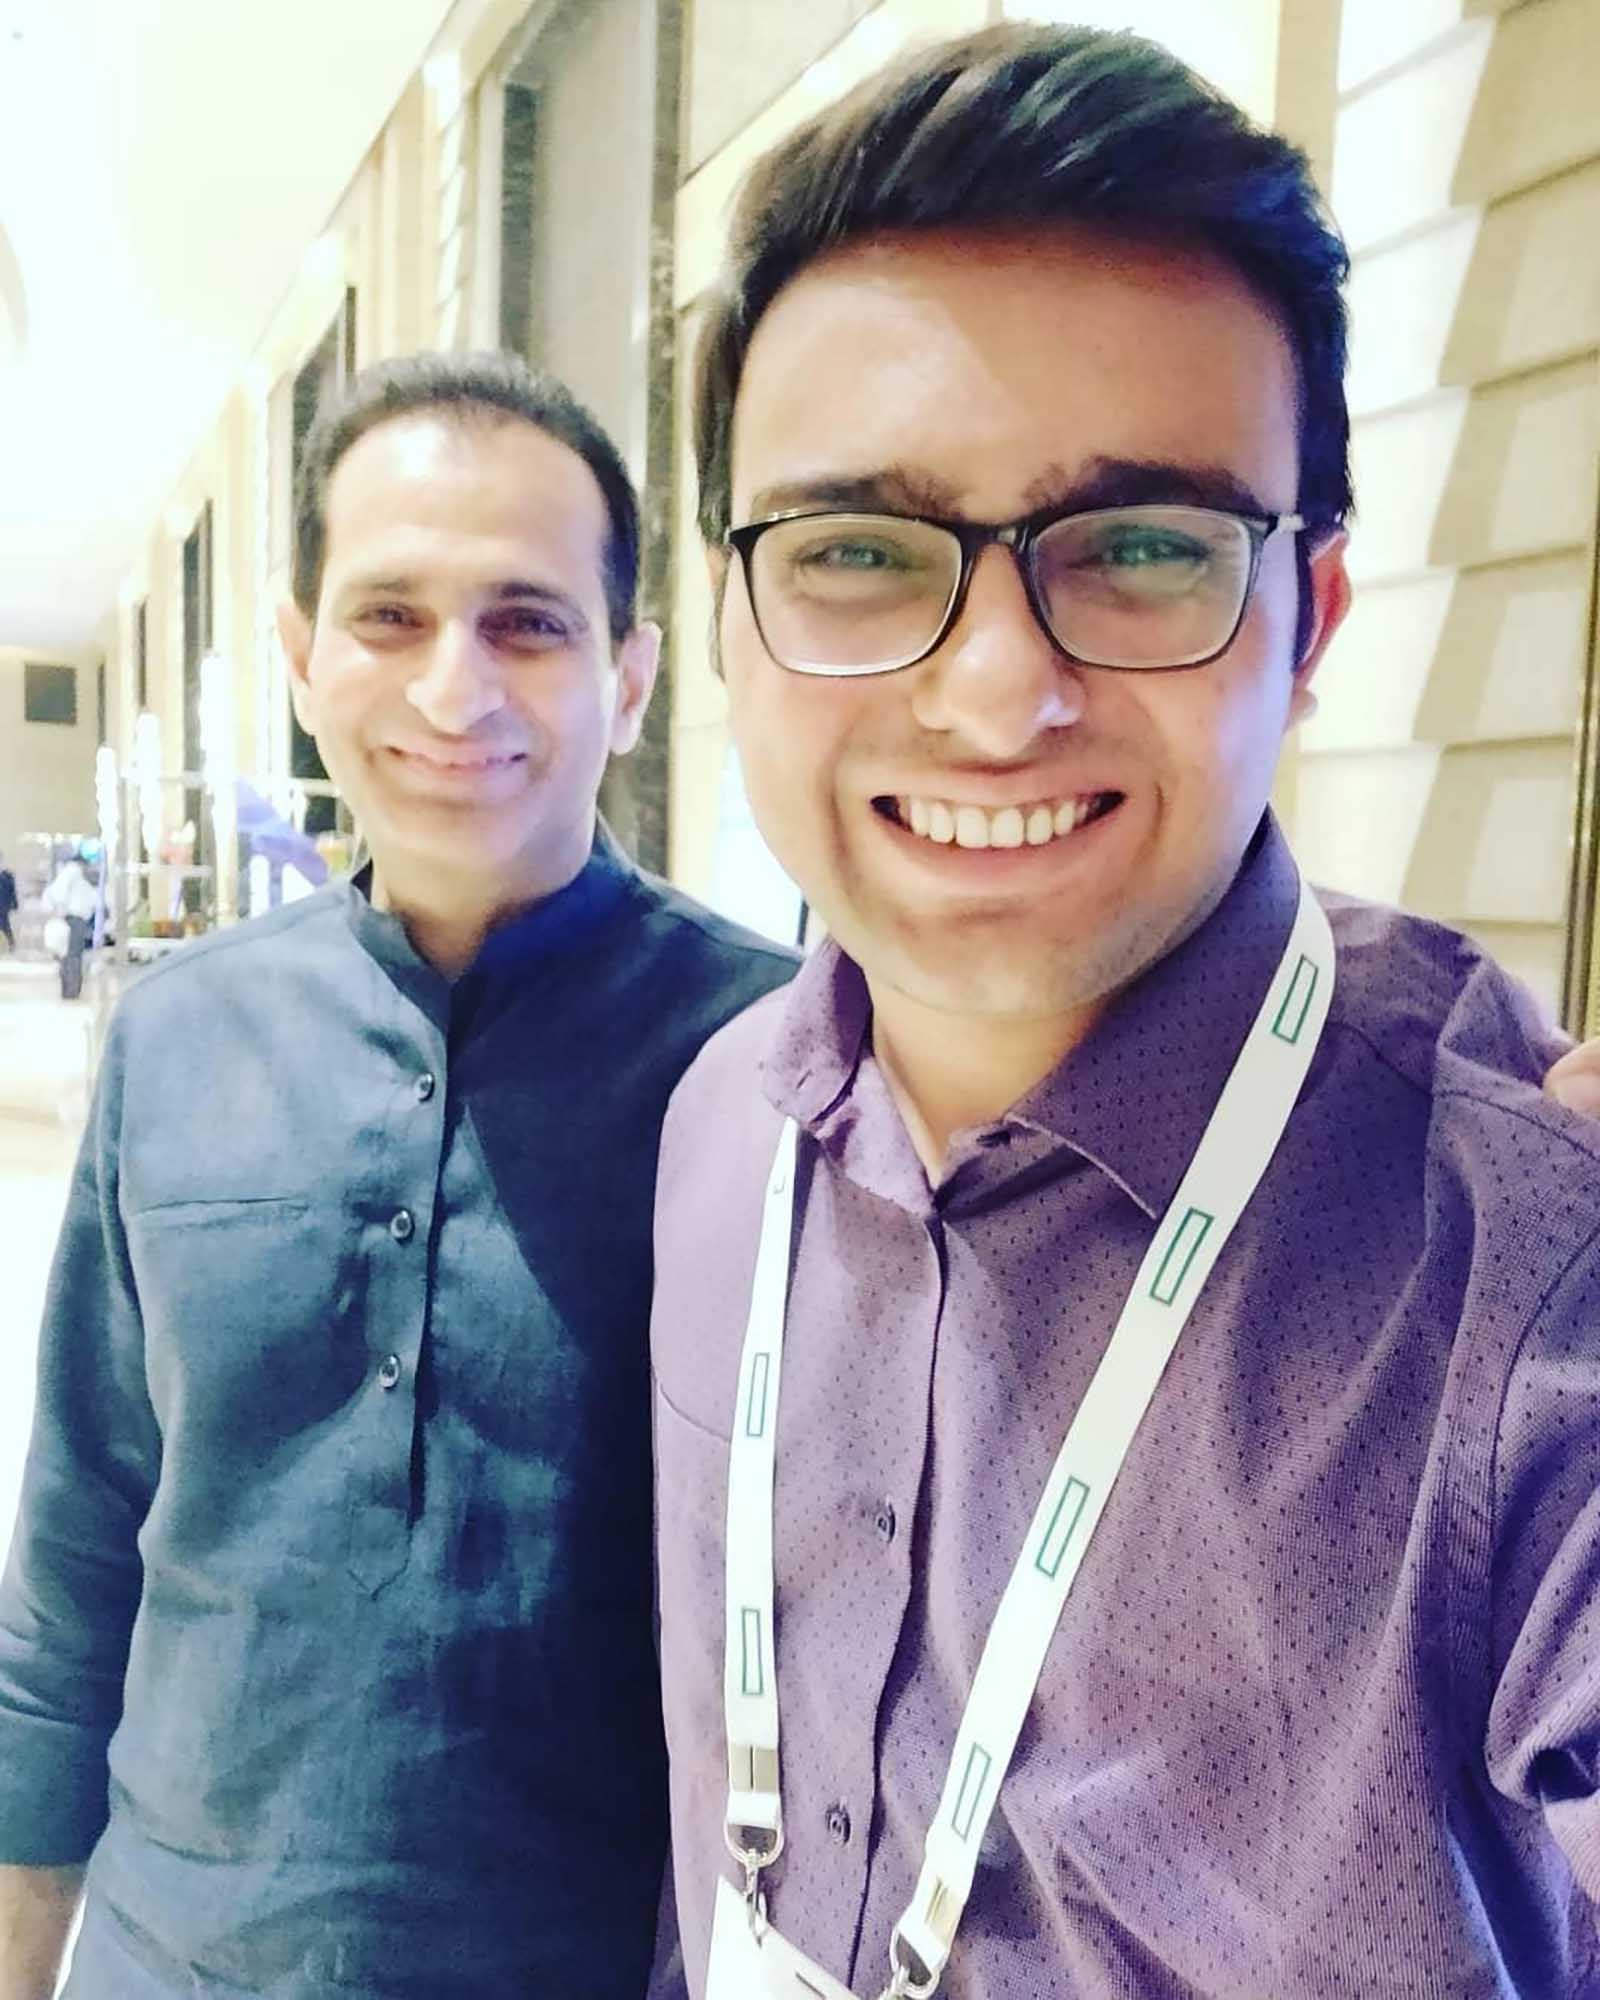 Media influencer Jaymin Shah wants to be his generation's greatest entrepreneur - Film Daily